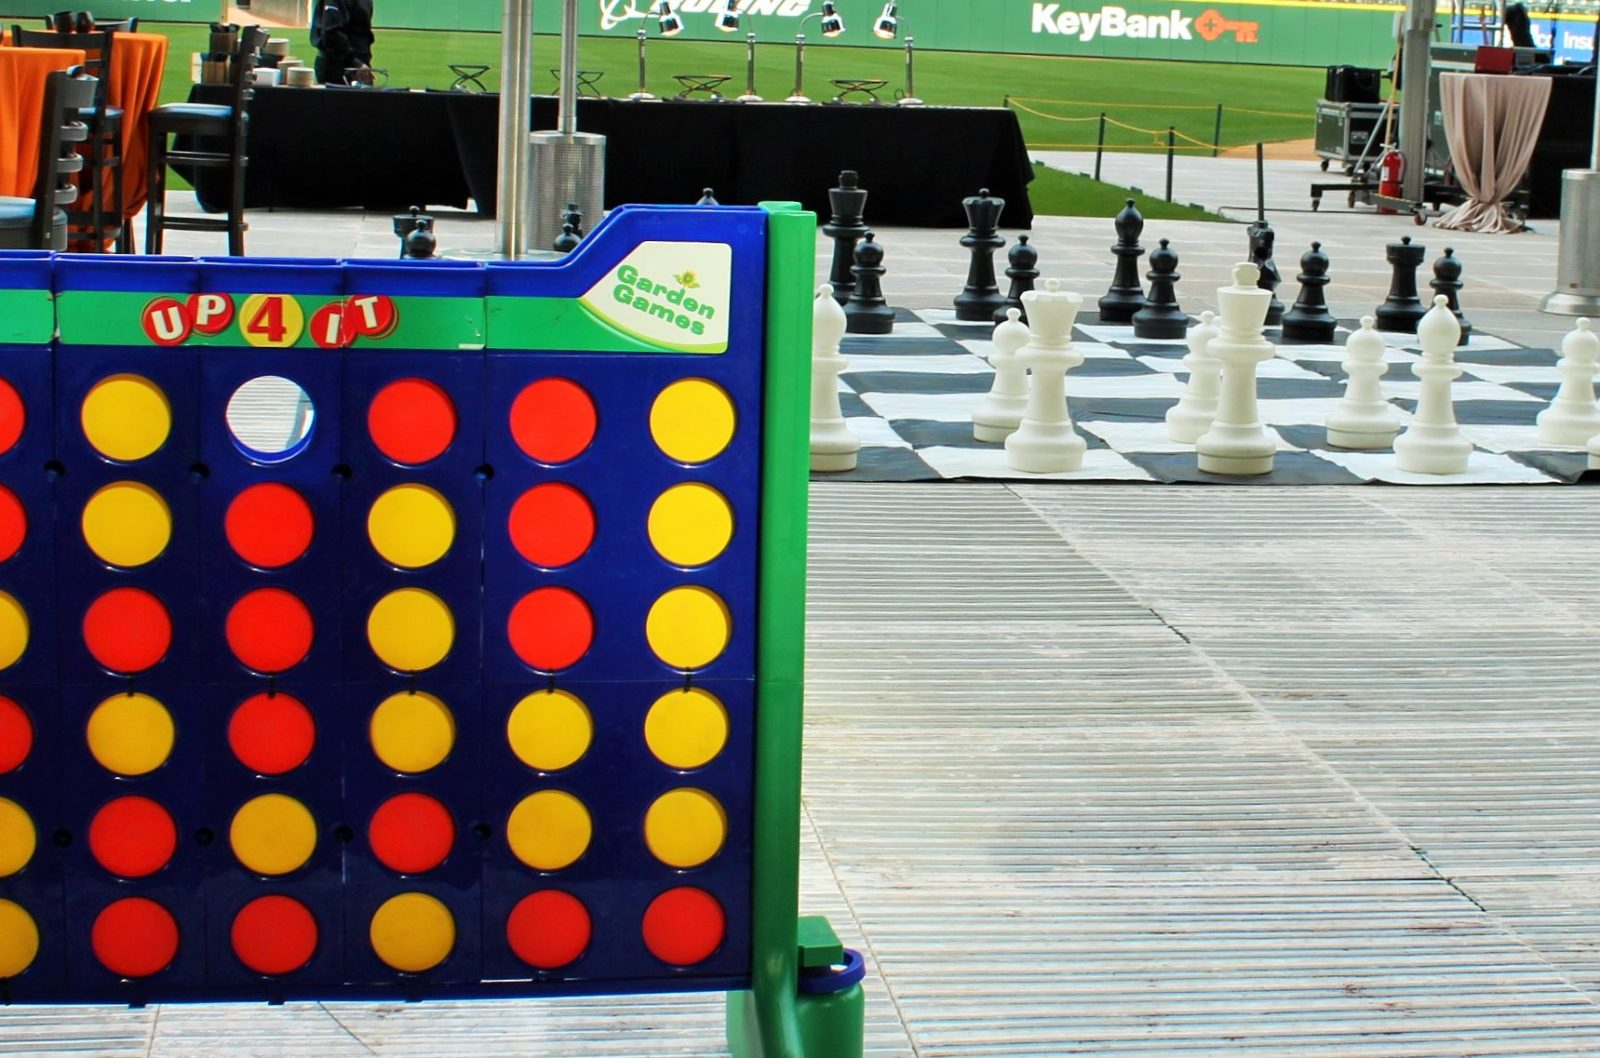 Giant Connect Four and Giant Chess yard game rental